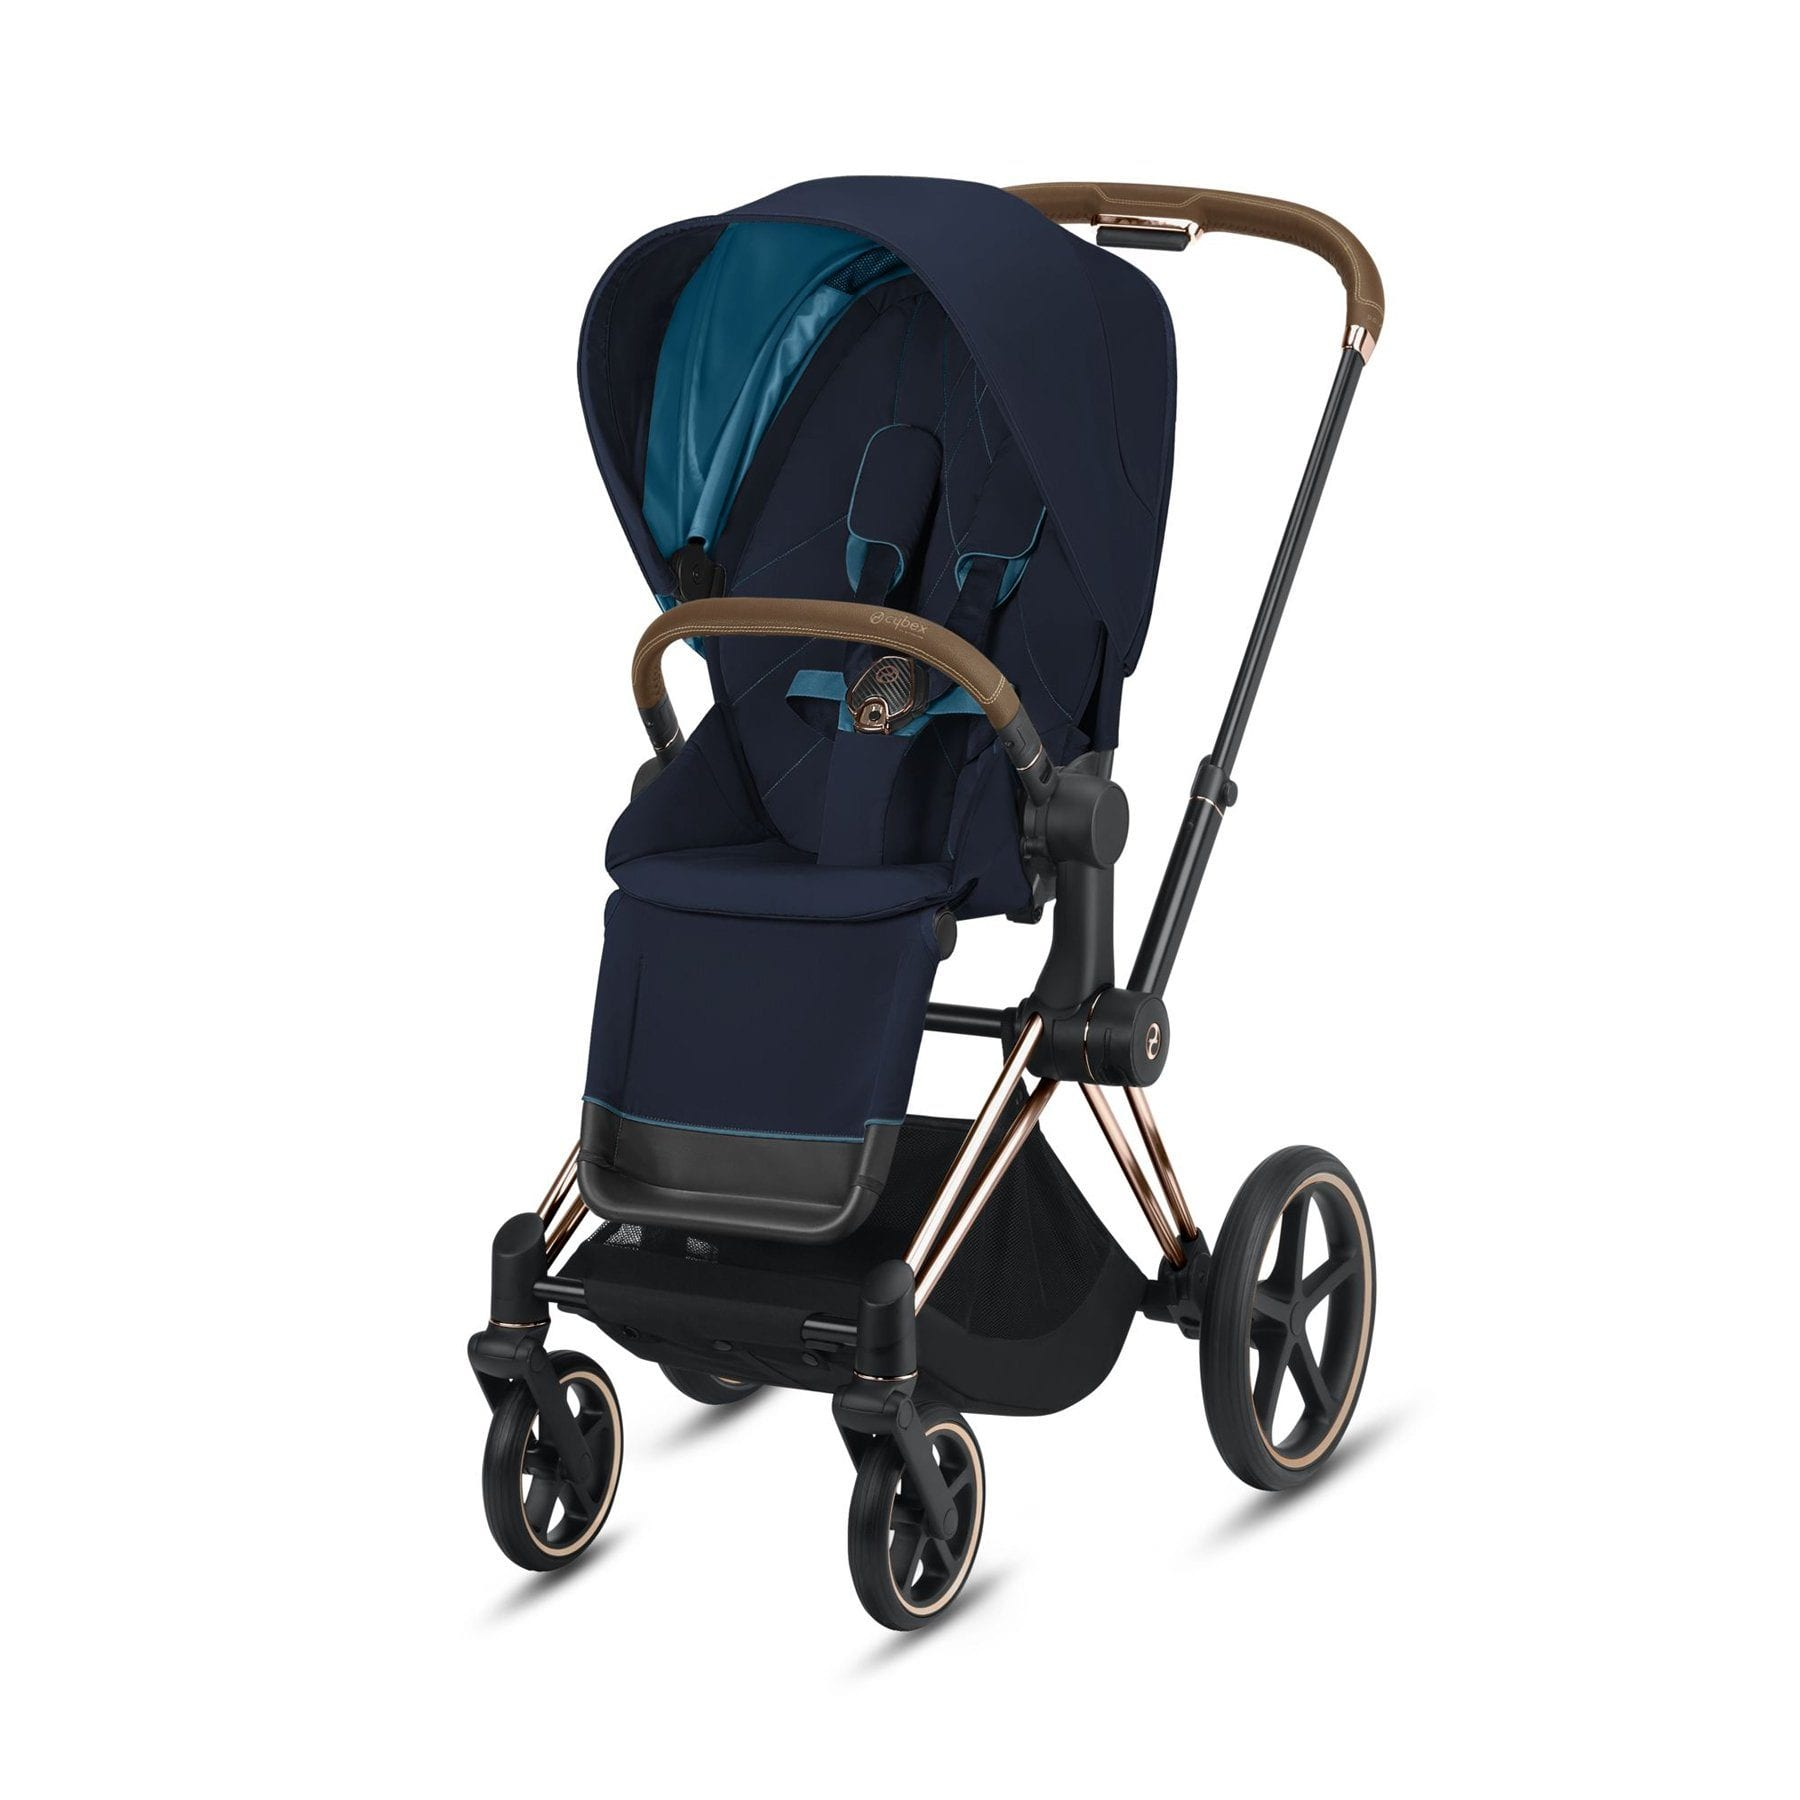 Cybex Rose Gold Priam - Nautical Blue